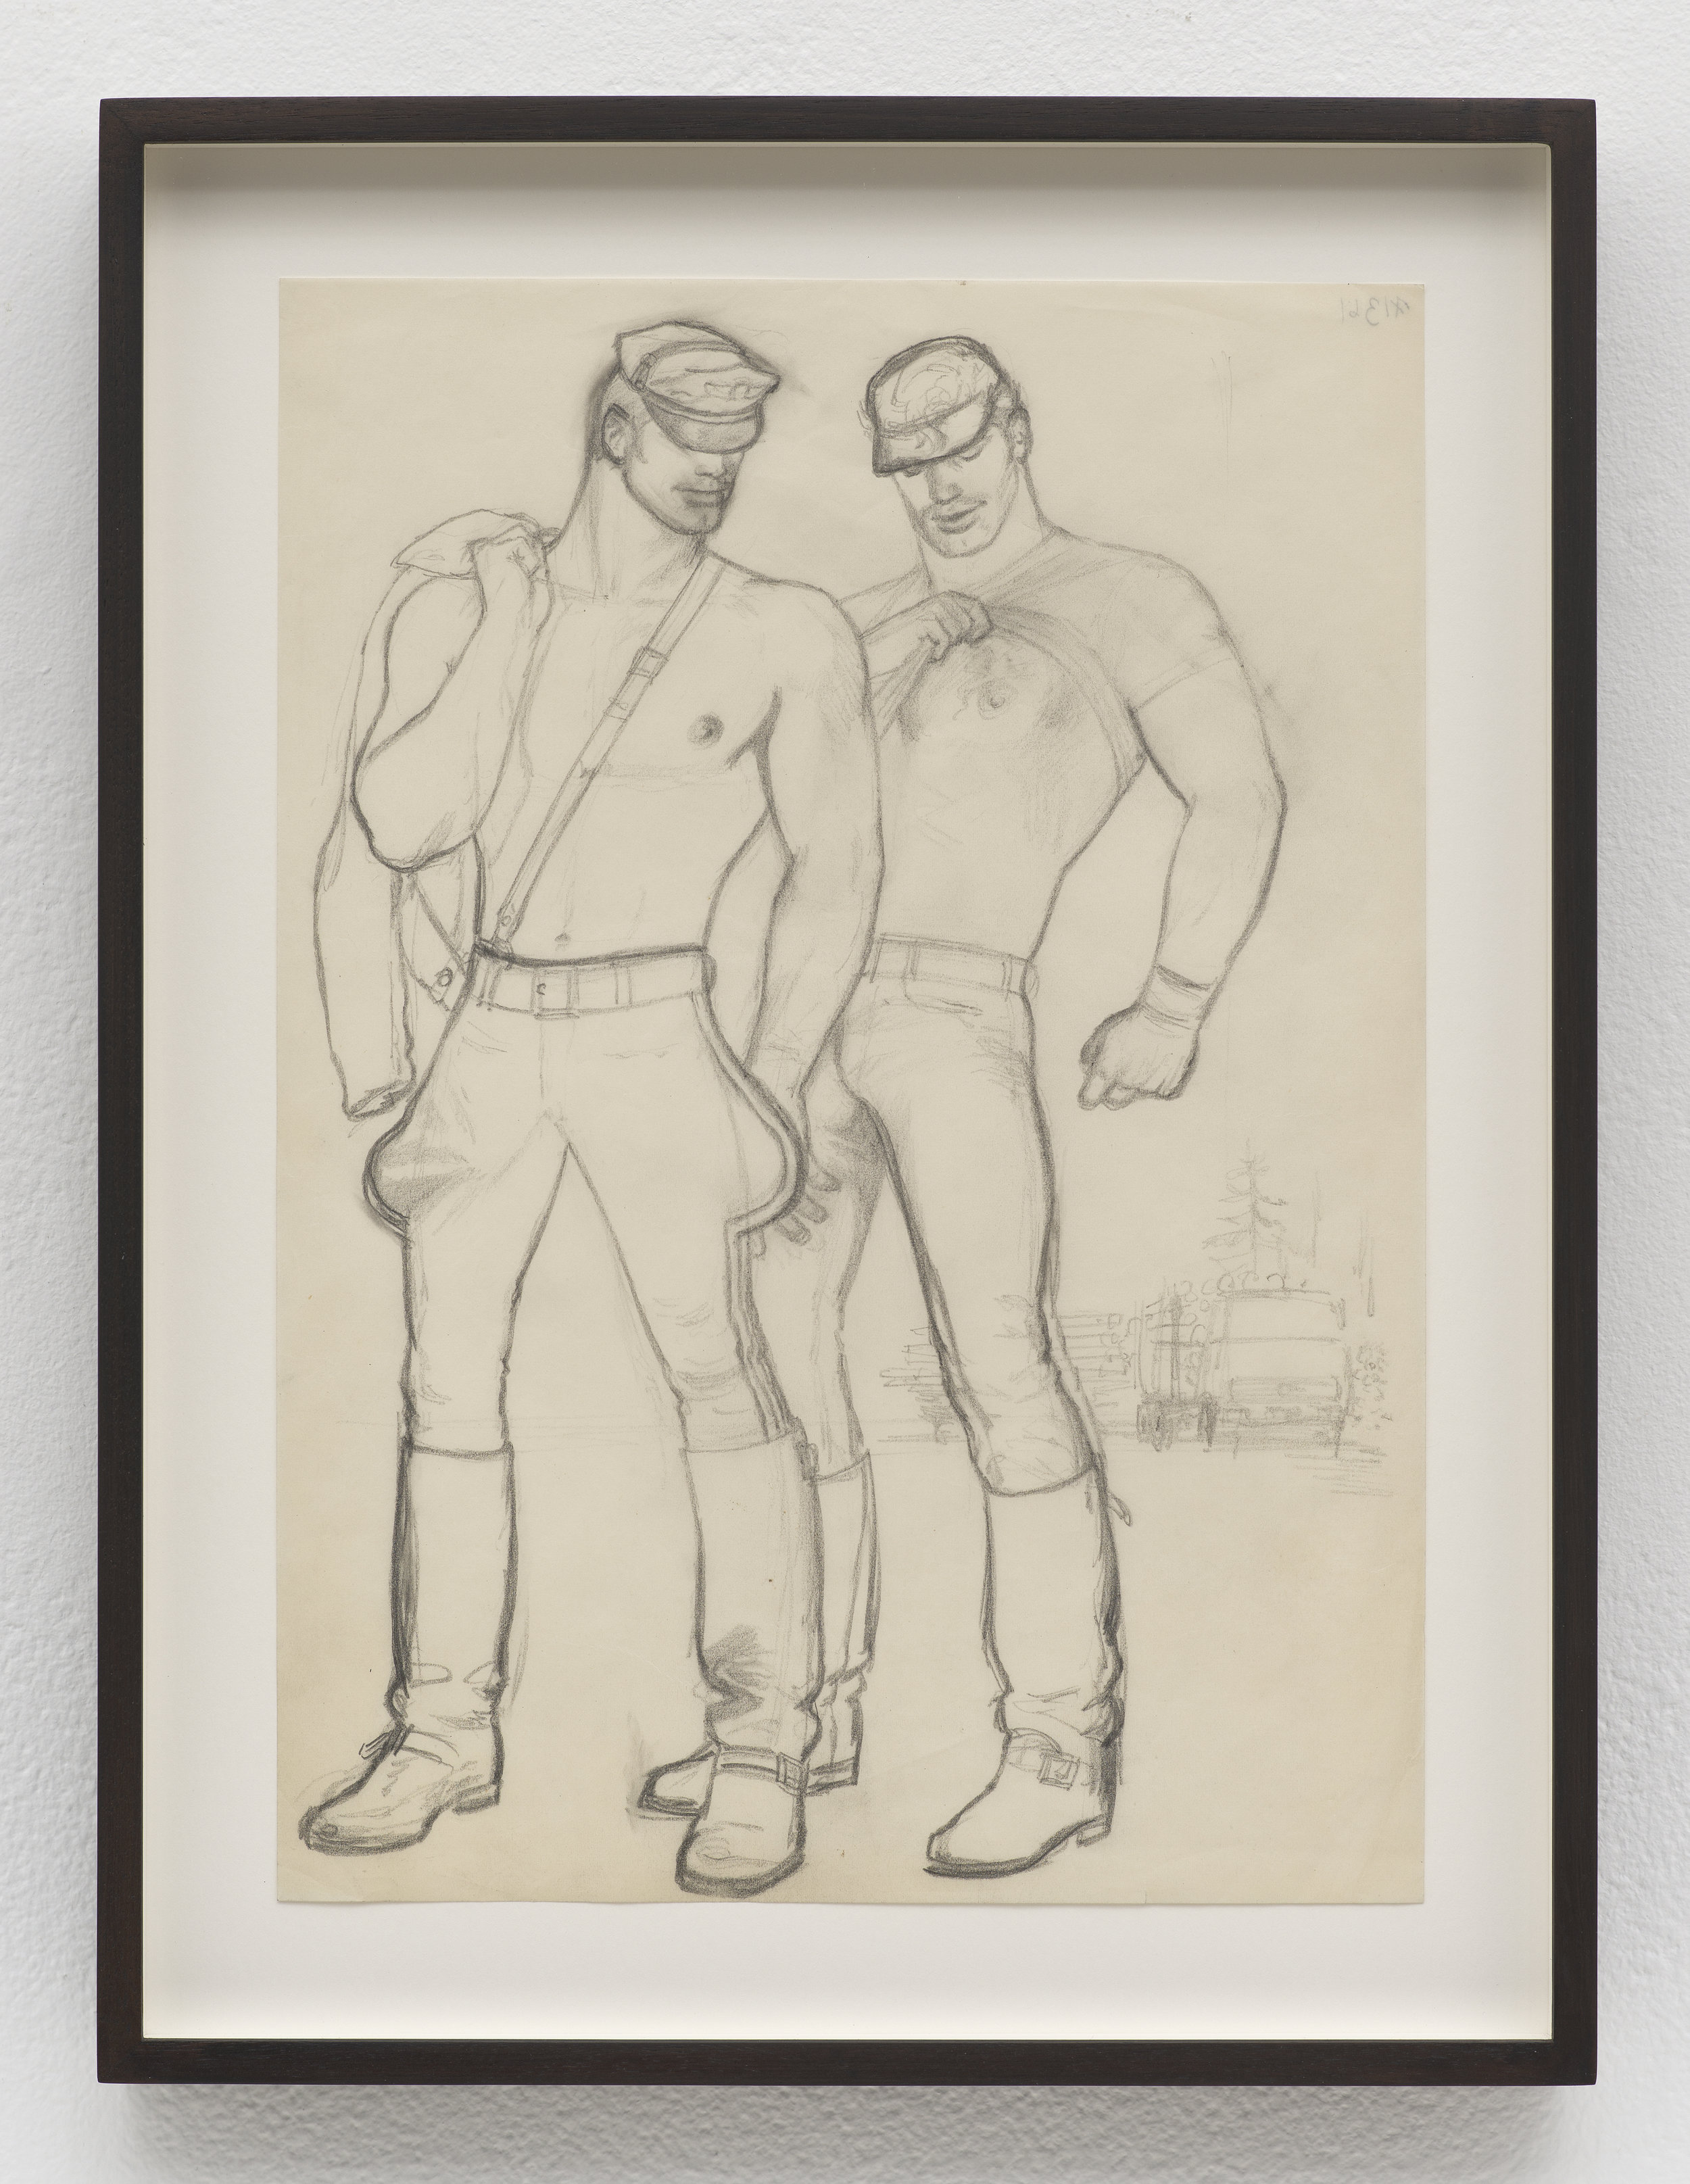 Tom Of Finland, Untitled (preparatory drawing), 1975 graphite on paper 36 x 27,3 cm - 14 1/4 x 10 3/4 inches (framed)